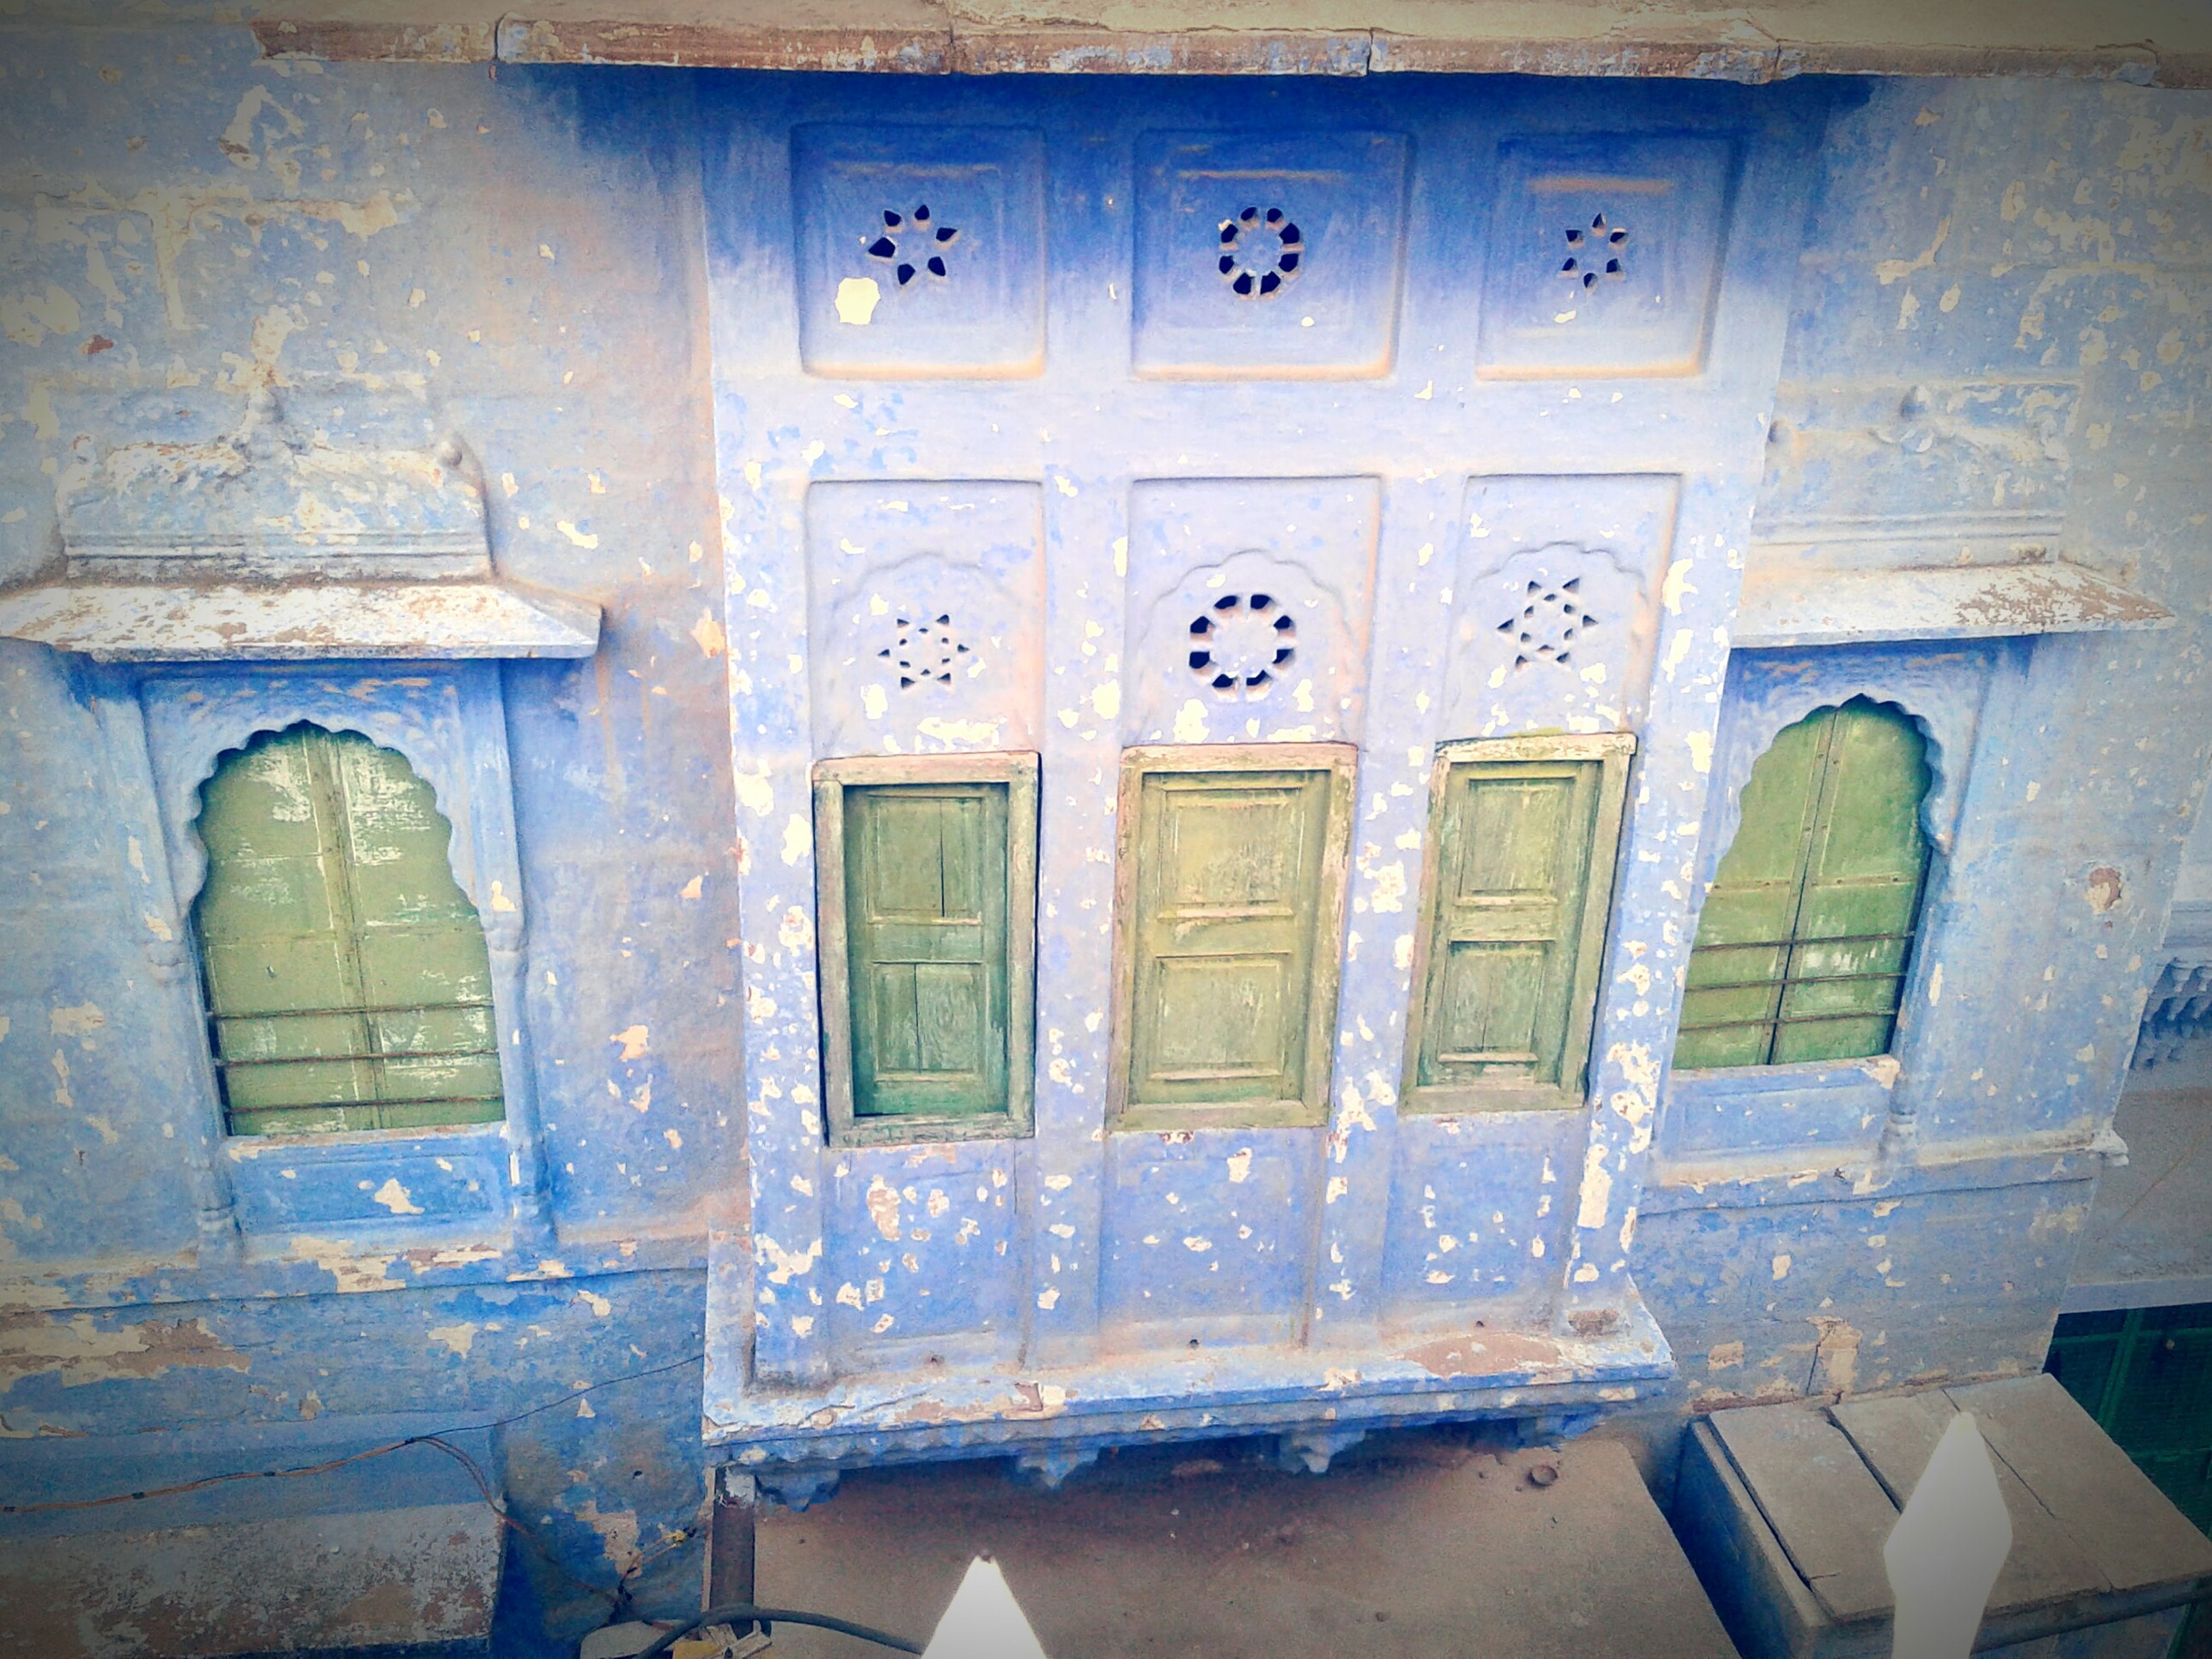 Out of the box..😉 Door No People Architecture Outdoors Day Close-up Click_n_share Click Click 📷📷📷 Cool_capture_ Hidden Places Blue Windows Built Structure Old House Old Structures Indian Culture  Indian Paintbrush Indian Artwork Artistic Photography Art Is Everywhere Historic Buildings  Blue City ...